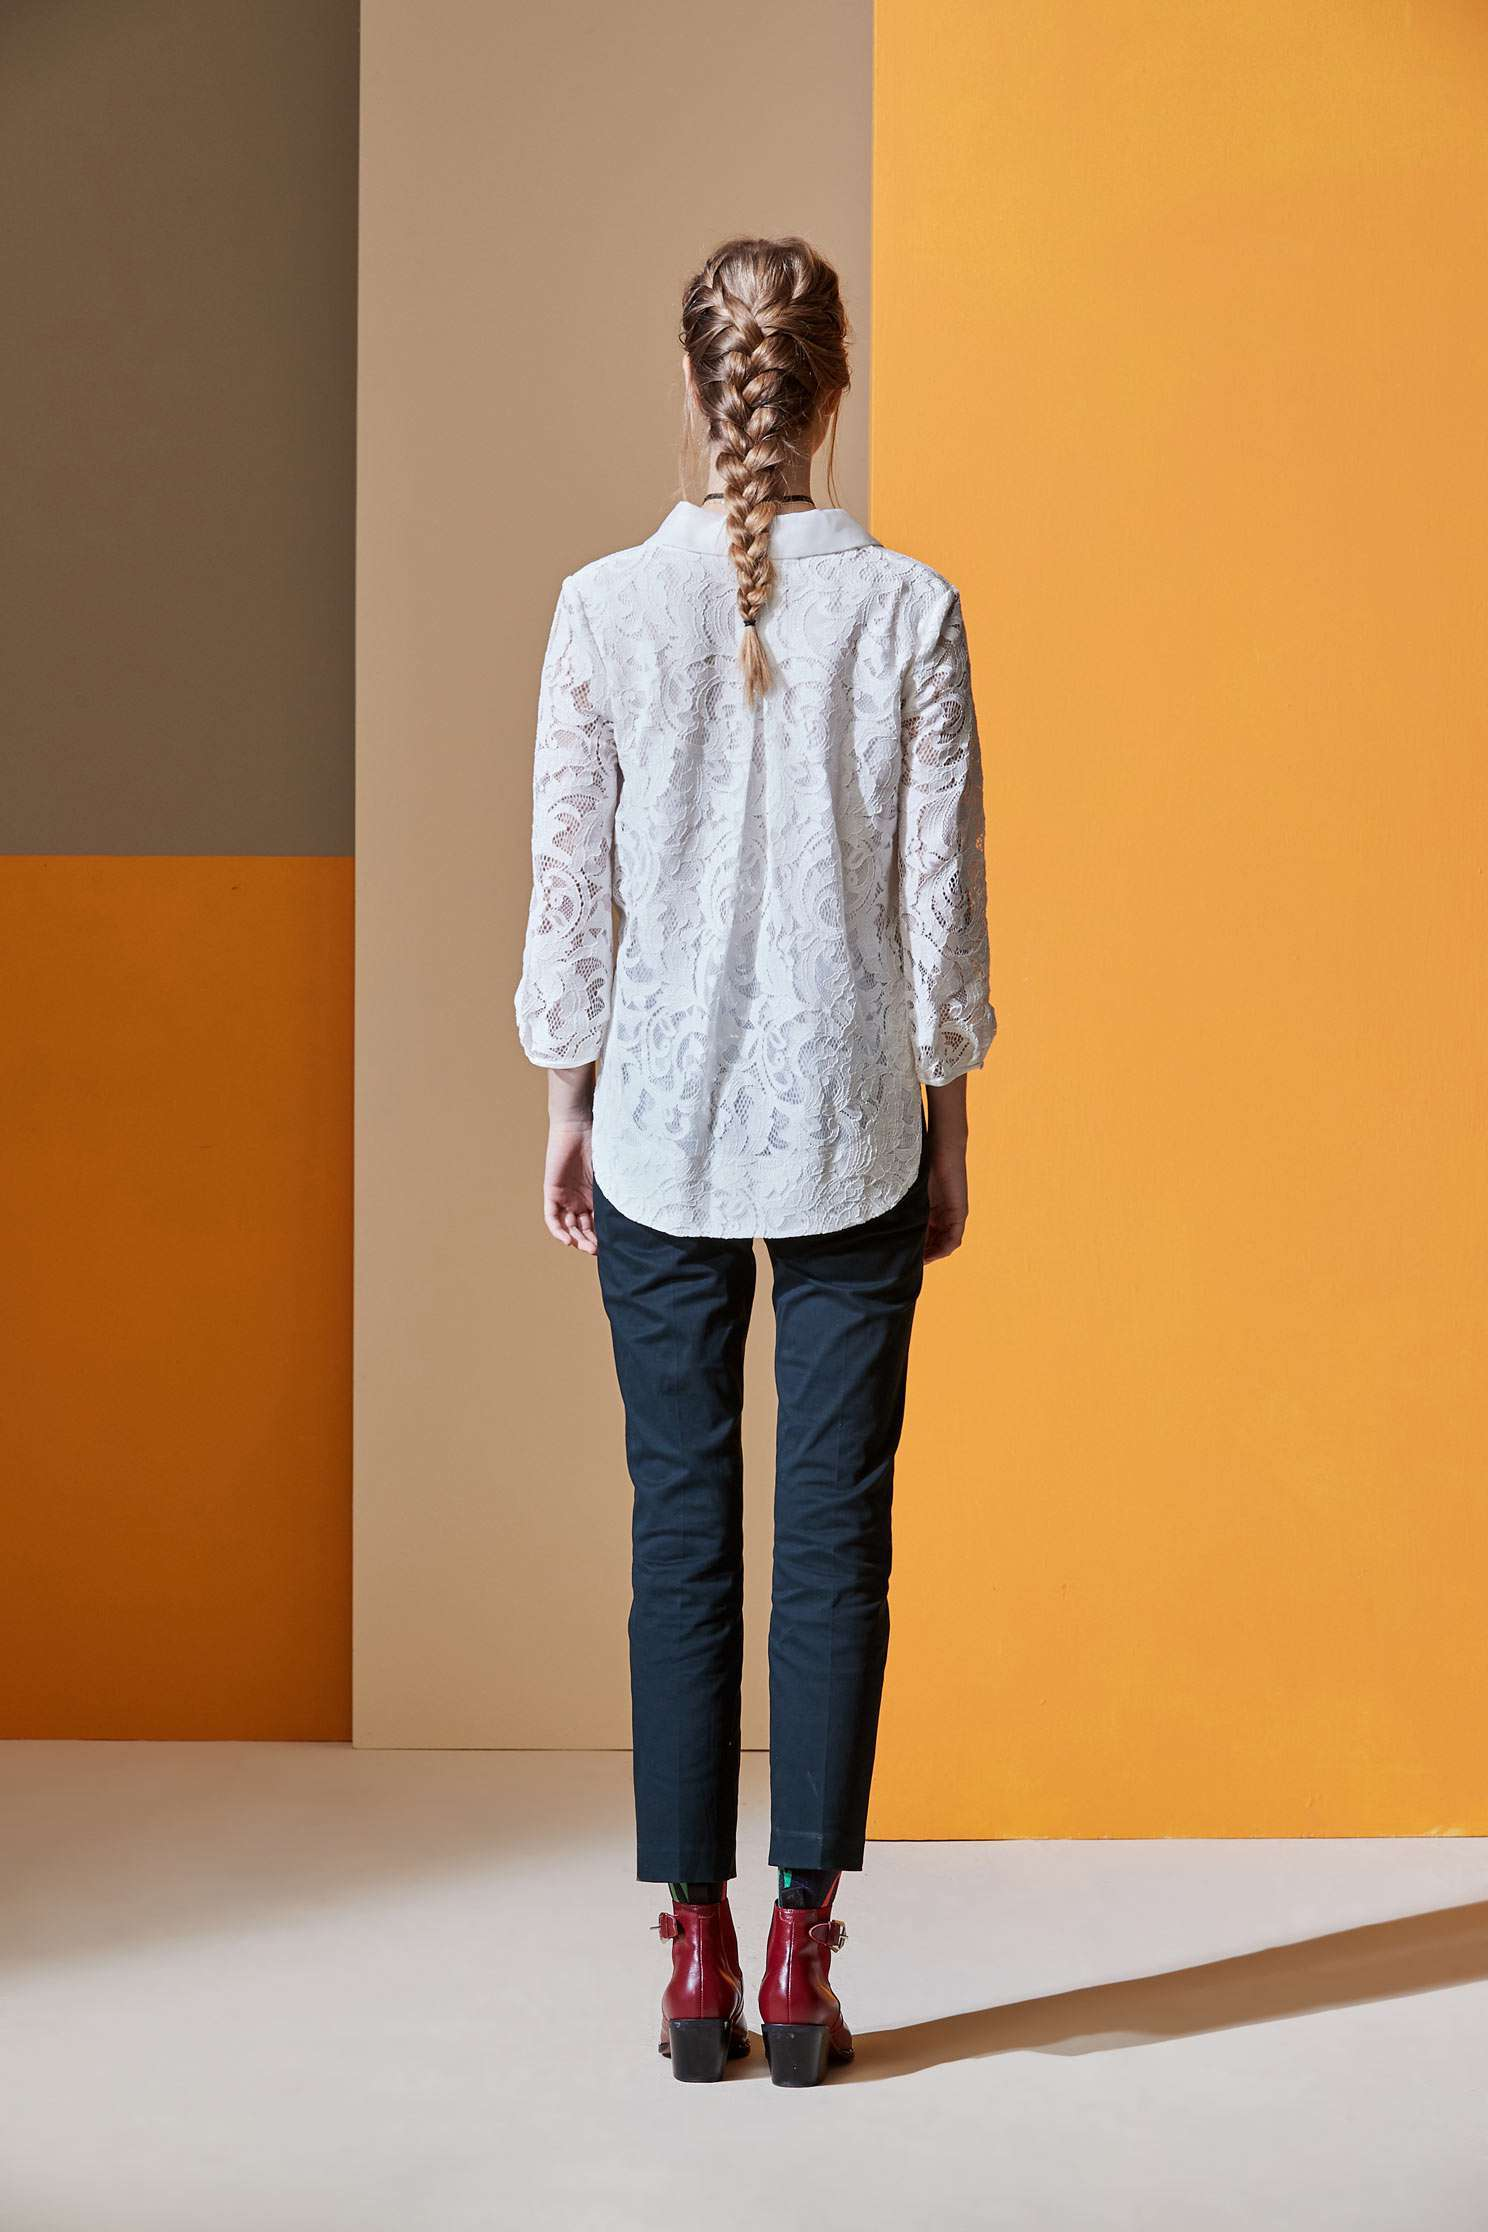 West Lace Rolling Top,Top,白色上衣,Lace,Laced Top,長袖上衣